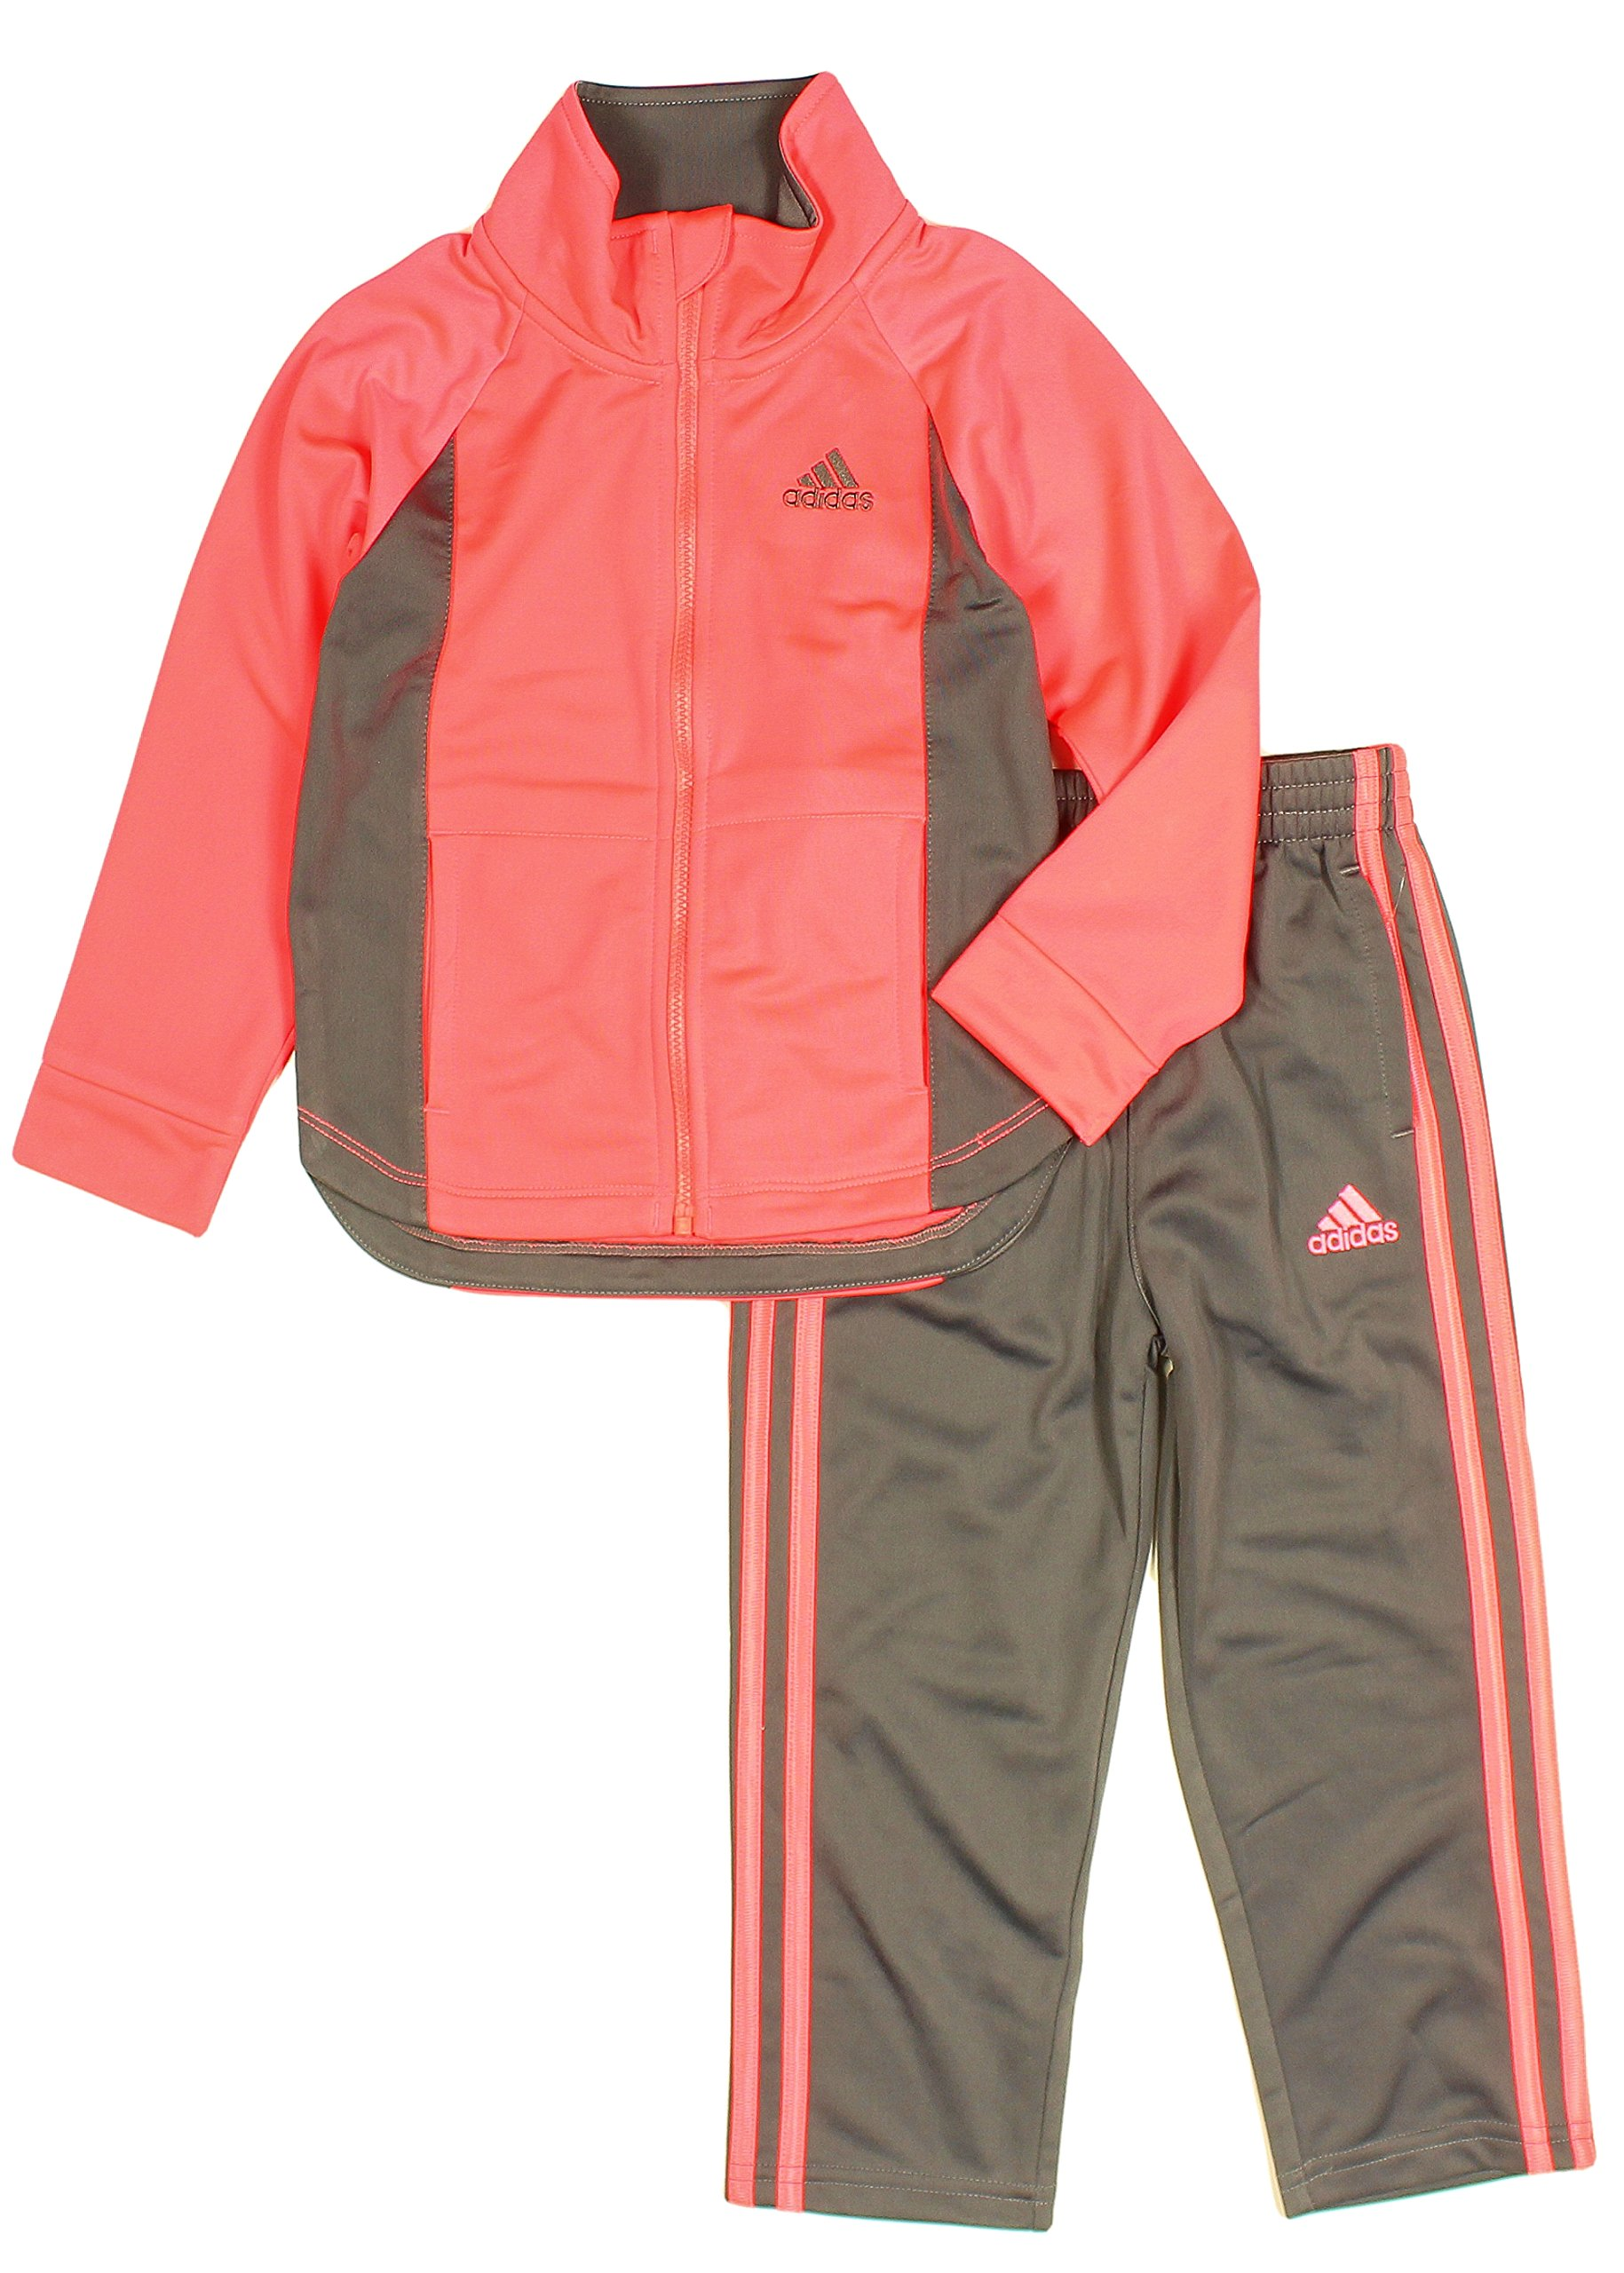 adidas Girls Tricot Zip Jacket and Pant Set, Coral Pink (4T) by adidas